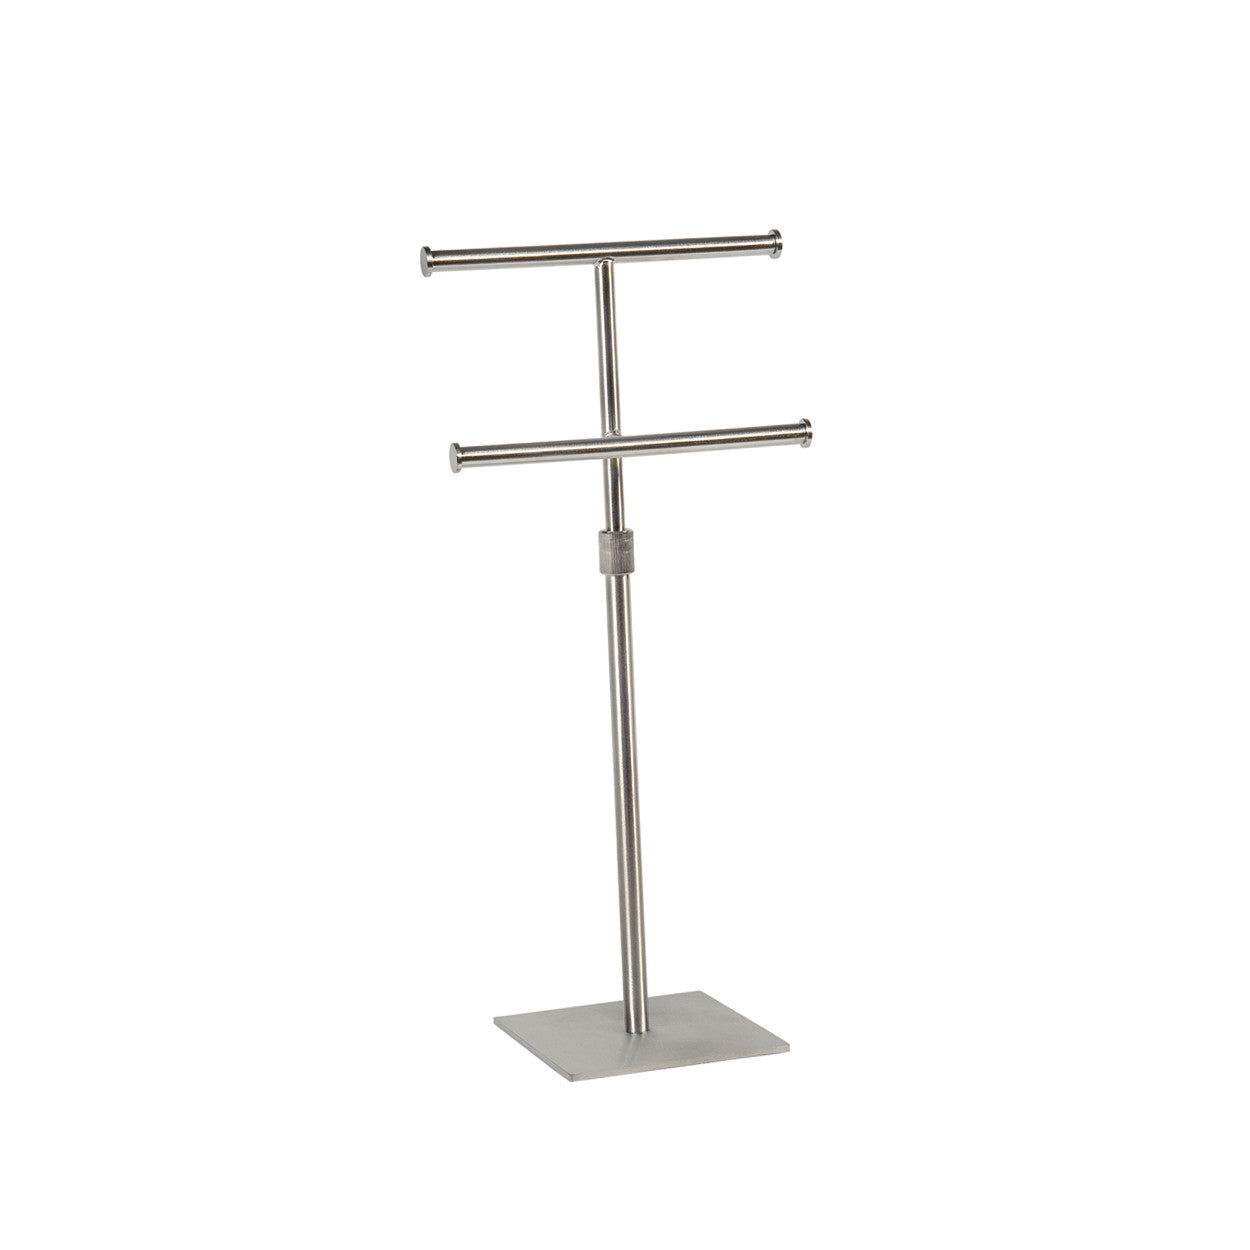 Two Tier Hanging Jewellery Display with Adjustable Height 150 mm sq base 300-570 mm Adj H (M2832SC)